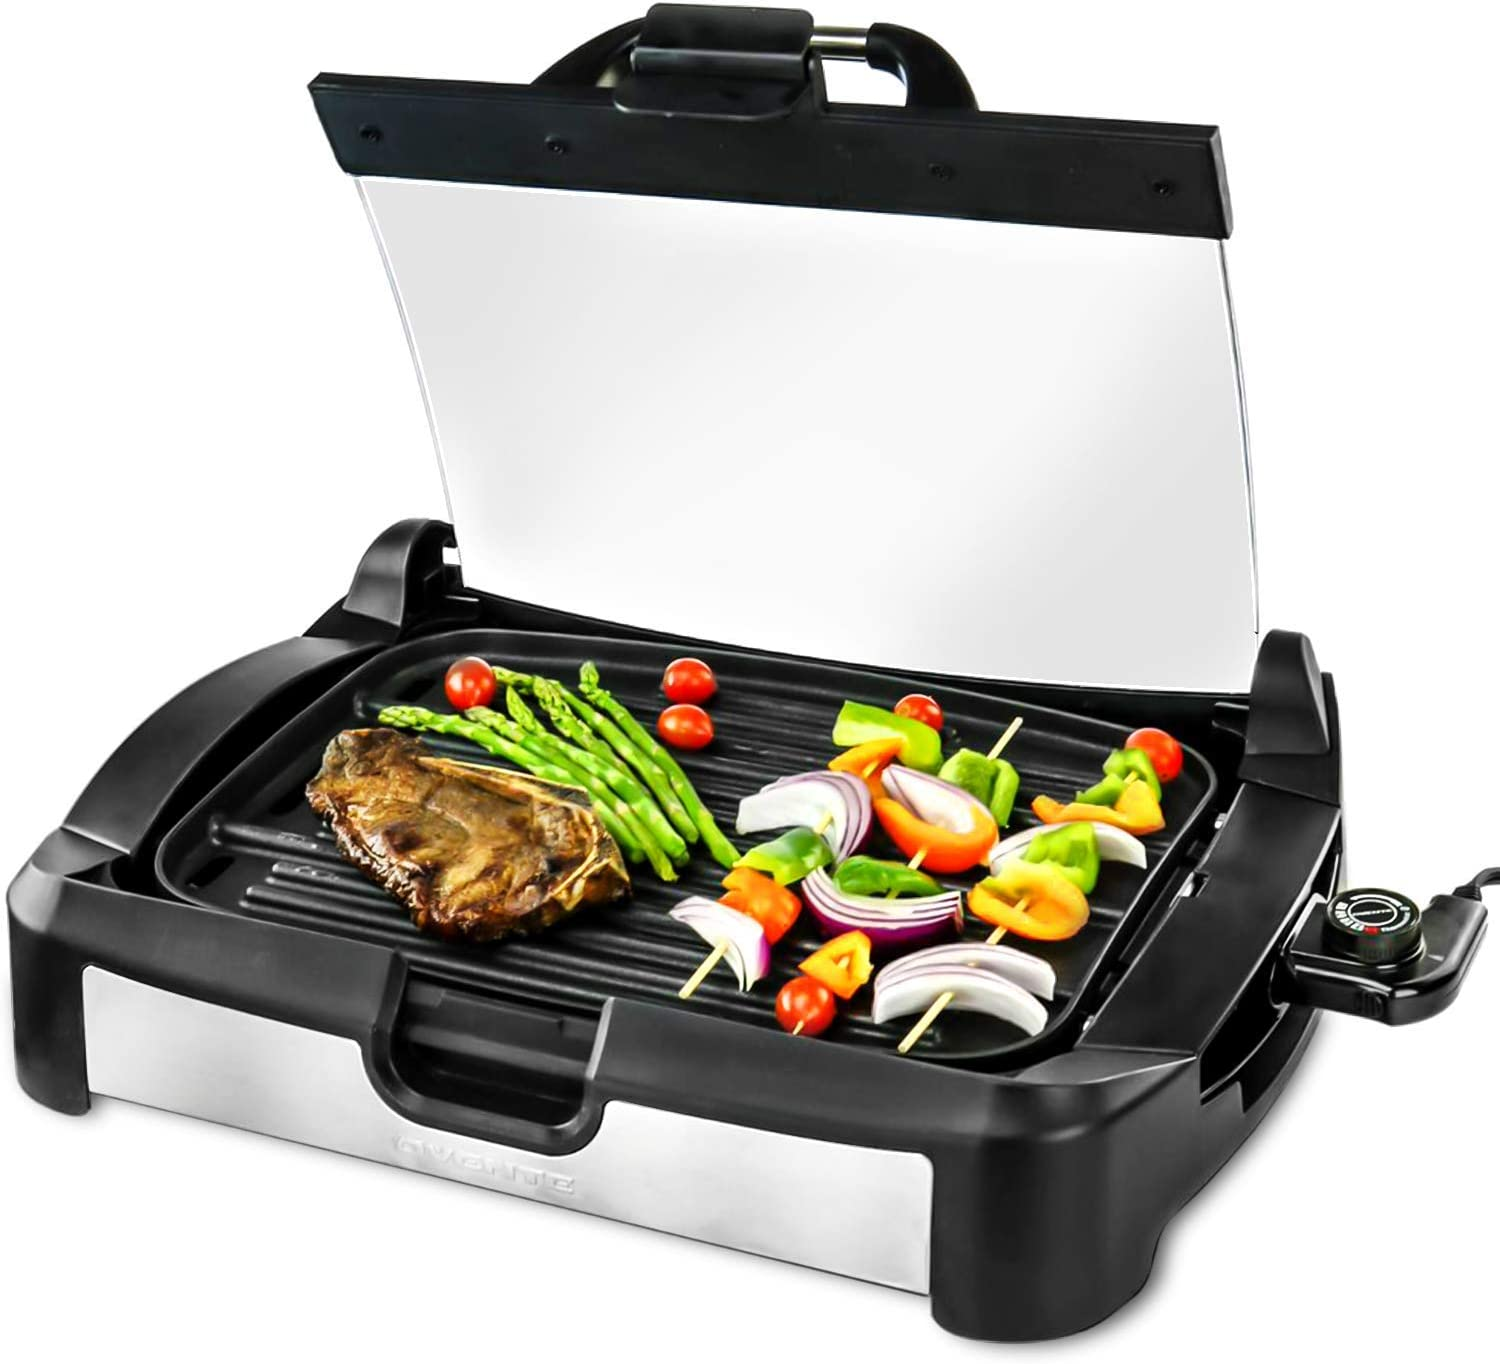 OVENTE GR2001B Electric Grill, 1700W, Reversible Grill Griddle, Heat-Tempered Glass Lid, Free Scraper, Removable Temperature Control Knob, Drip Tray, Black